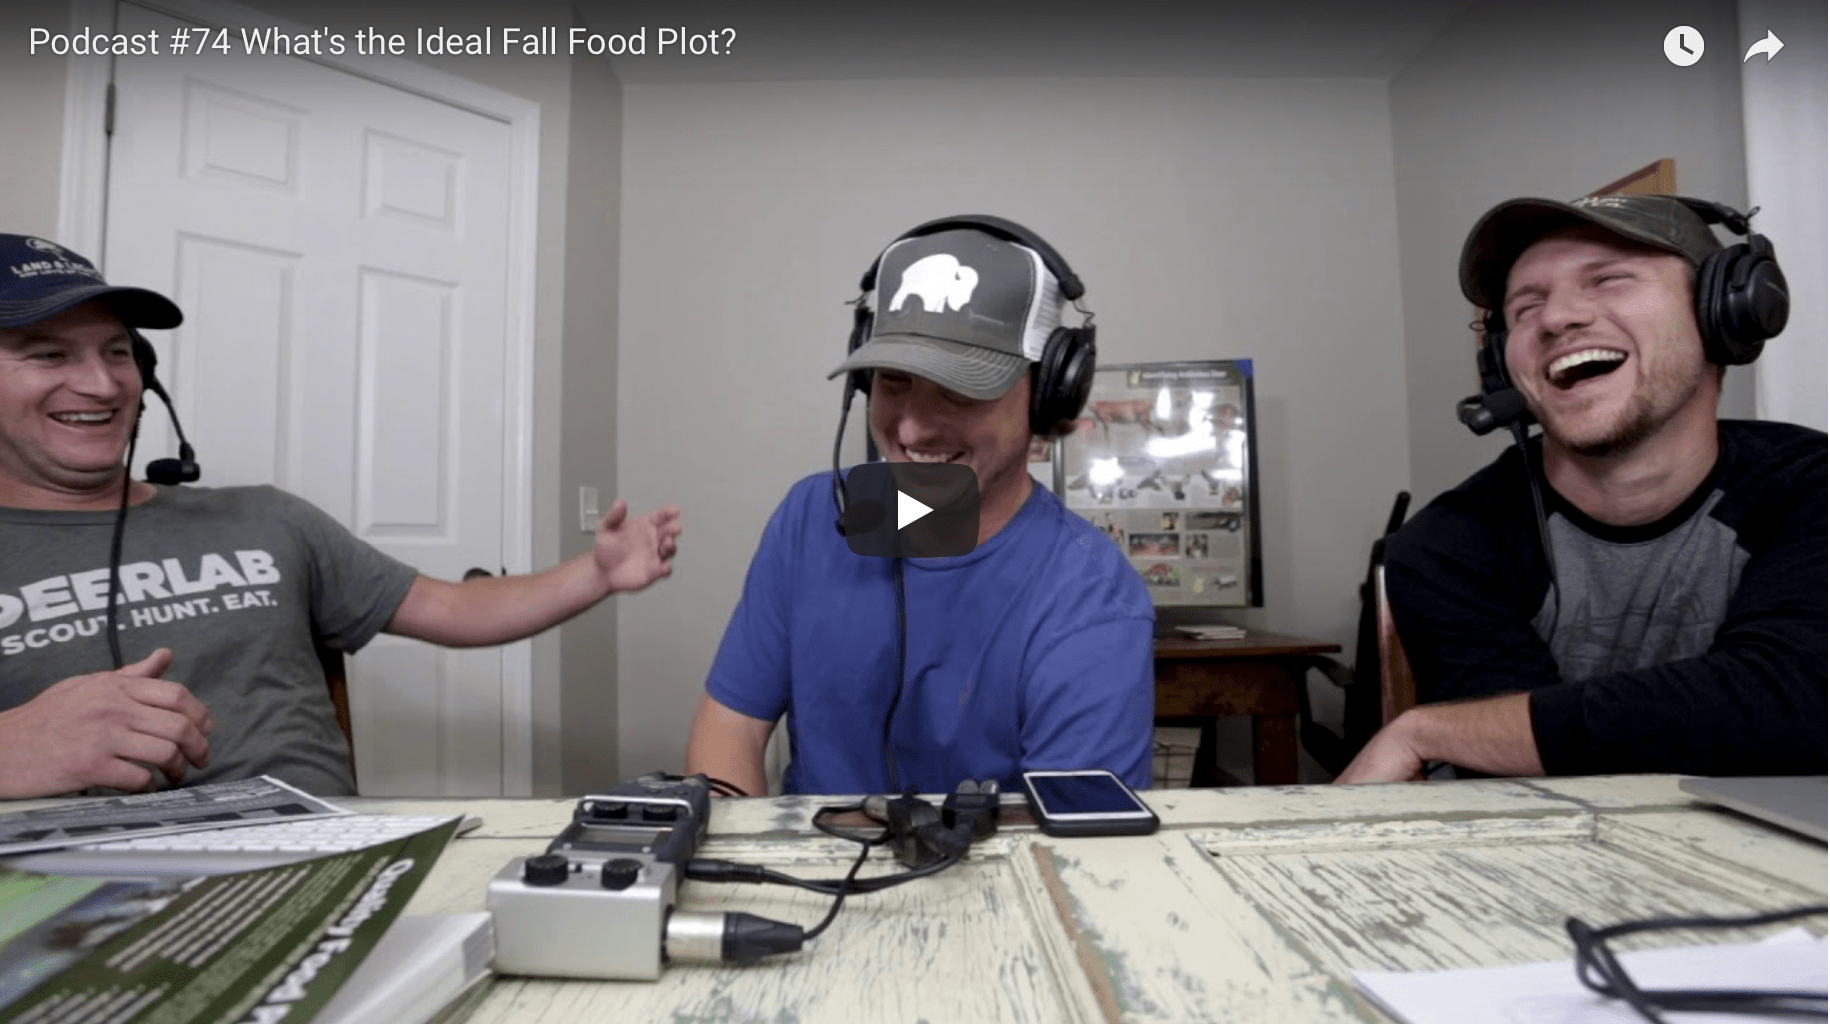 Podcast #74: Fall Food Plot Fanatics